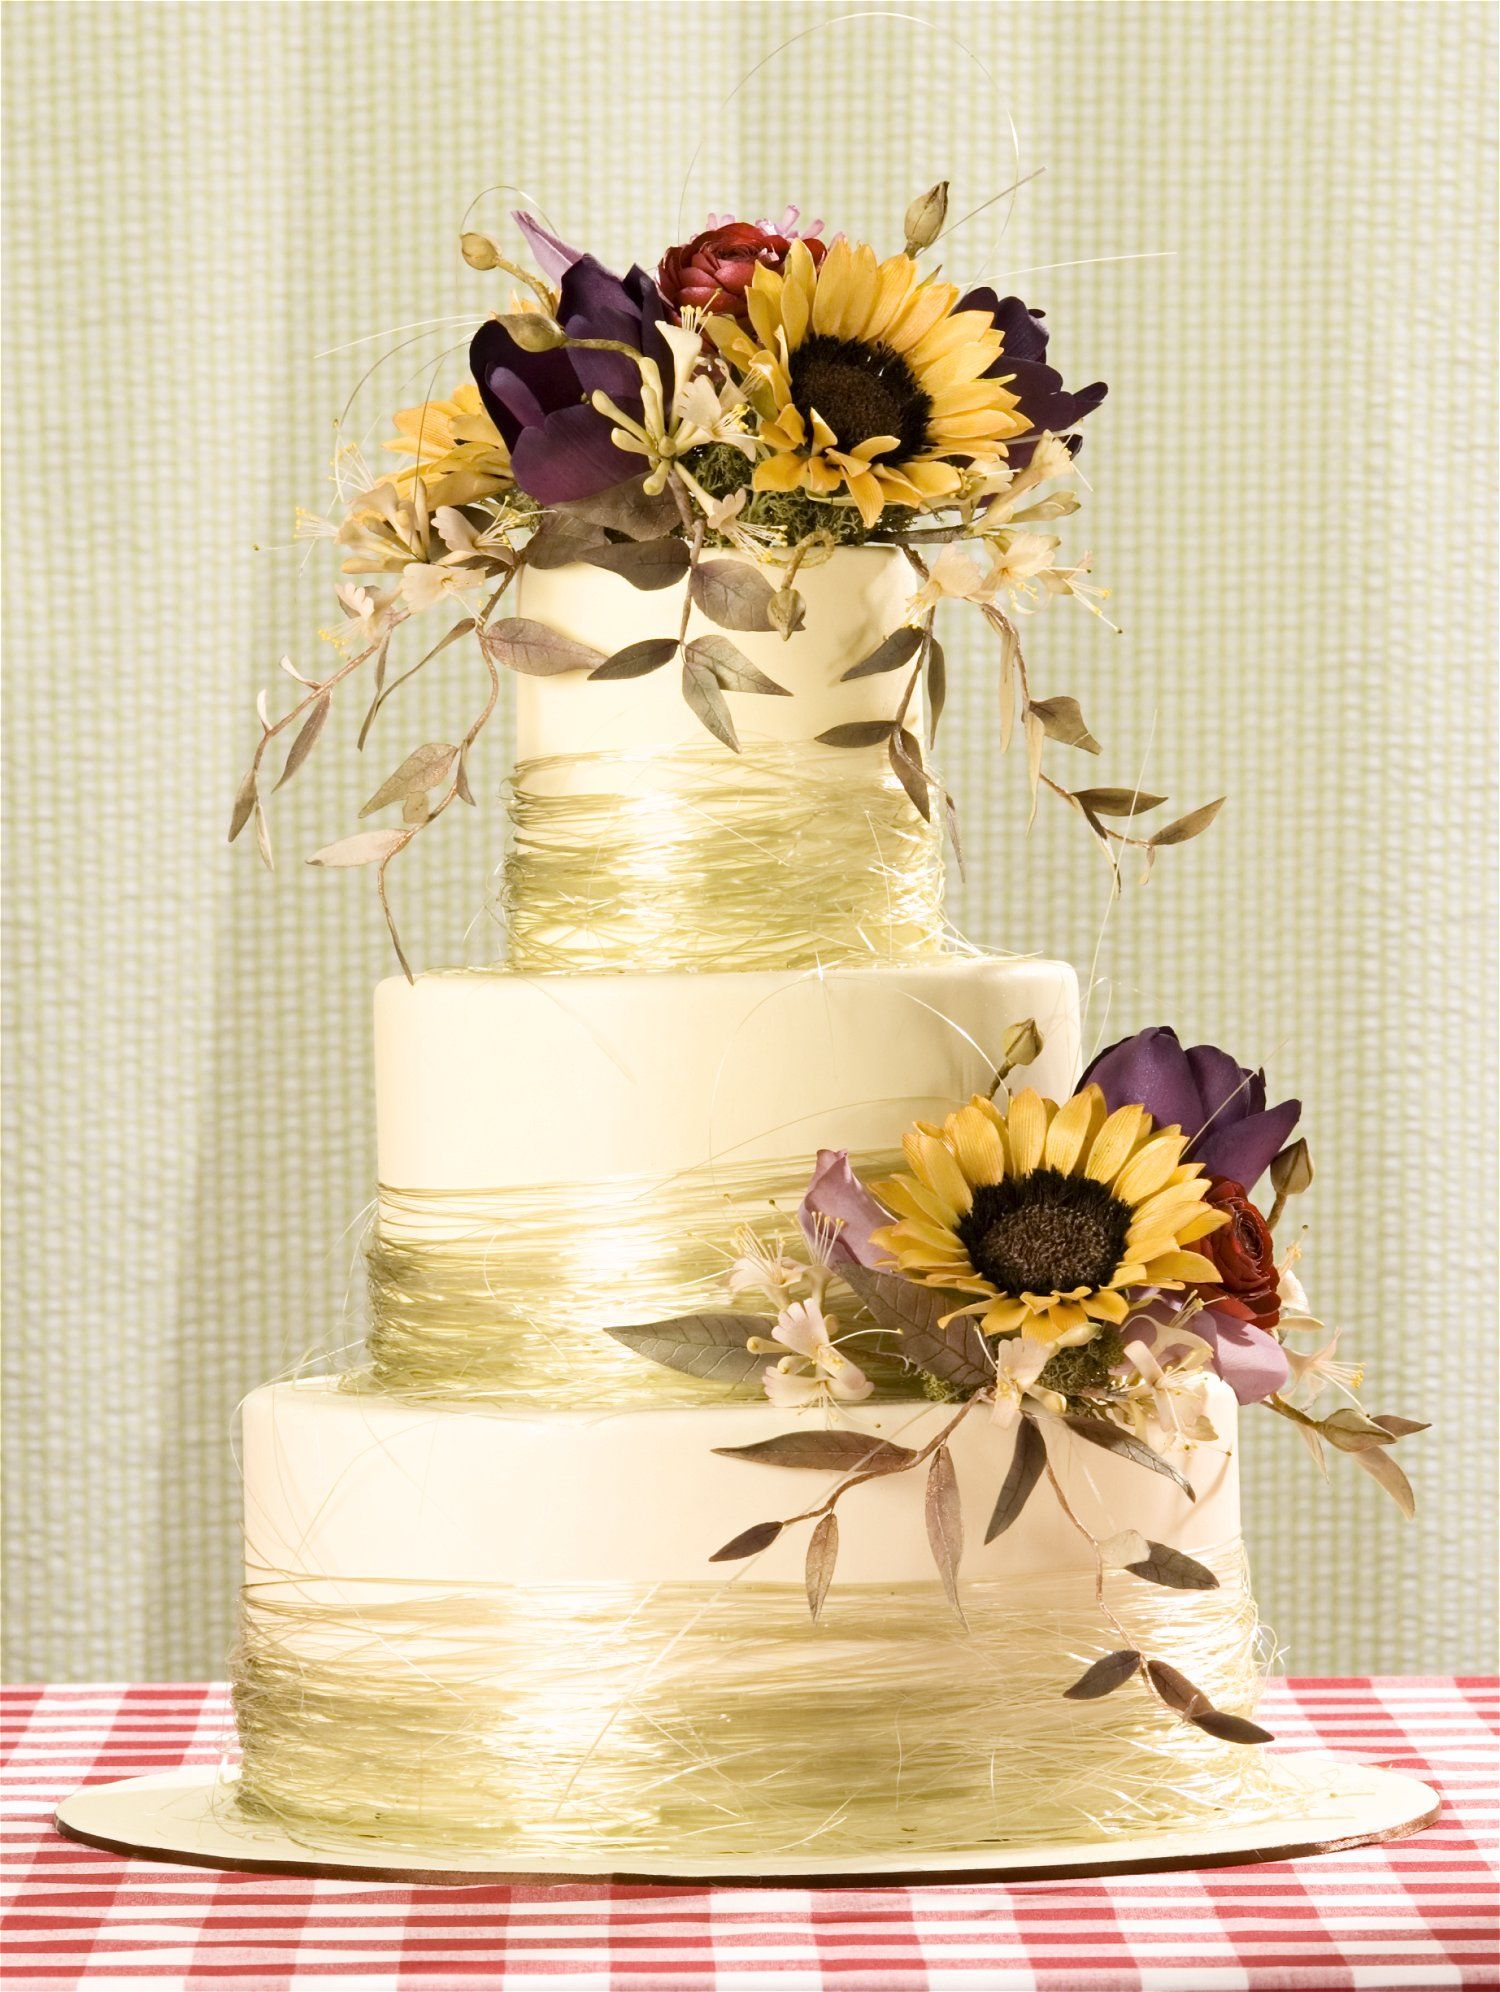 Elizabeth hodes custom cakes and sugar art fondant white ivory elizabeth hodes custom cakes and sugar art fondant white ivory gold yellow black rust red purple green purple flowers and sunflowers dhlflorist Image collections